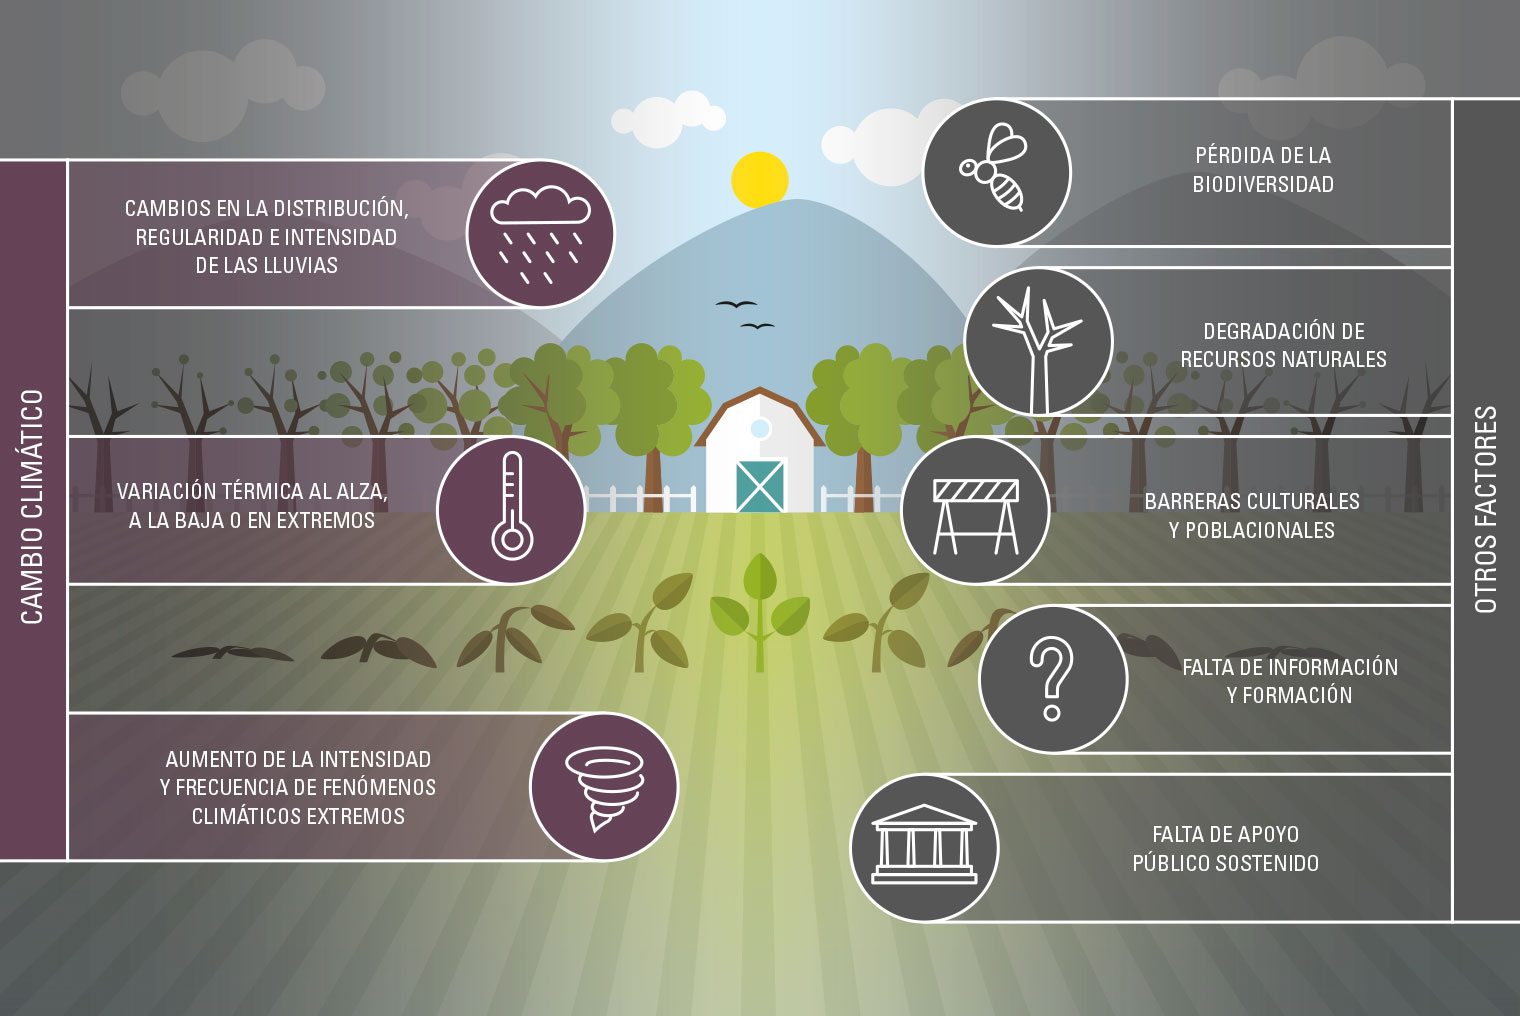 Agricultura resiliente